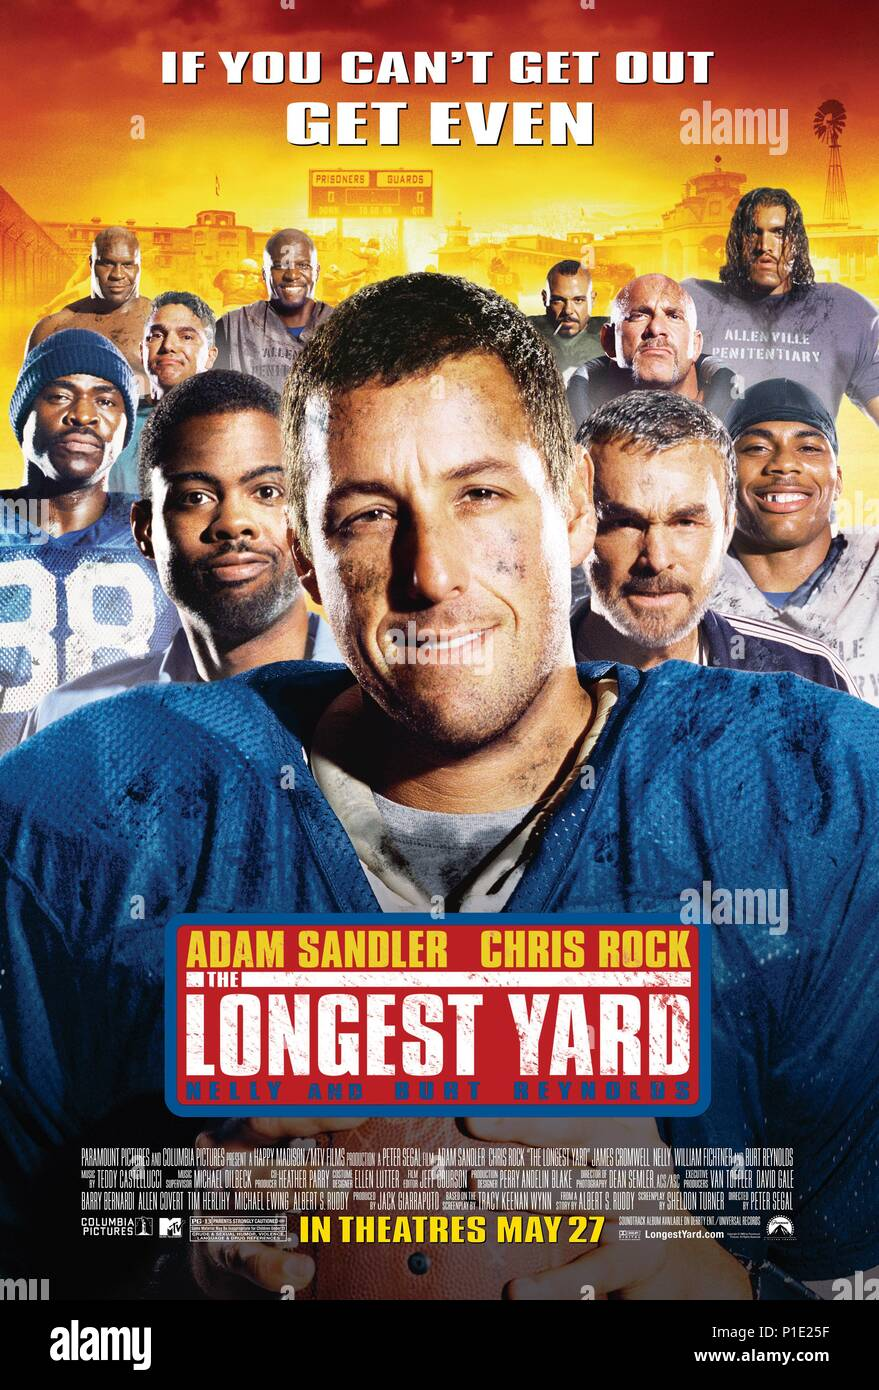 The Longest Yard Film Stock Photos & The Longest Yard Film